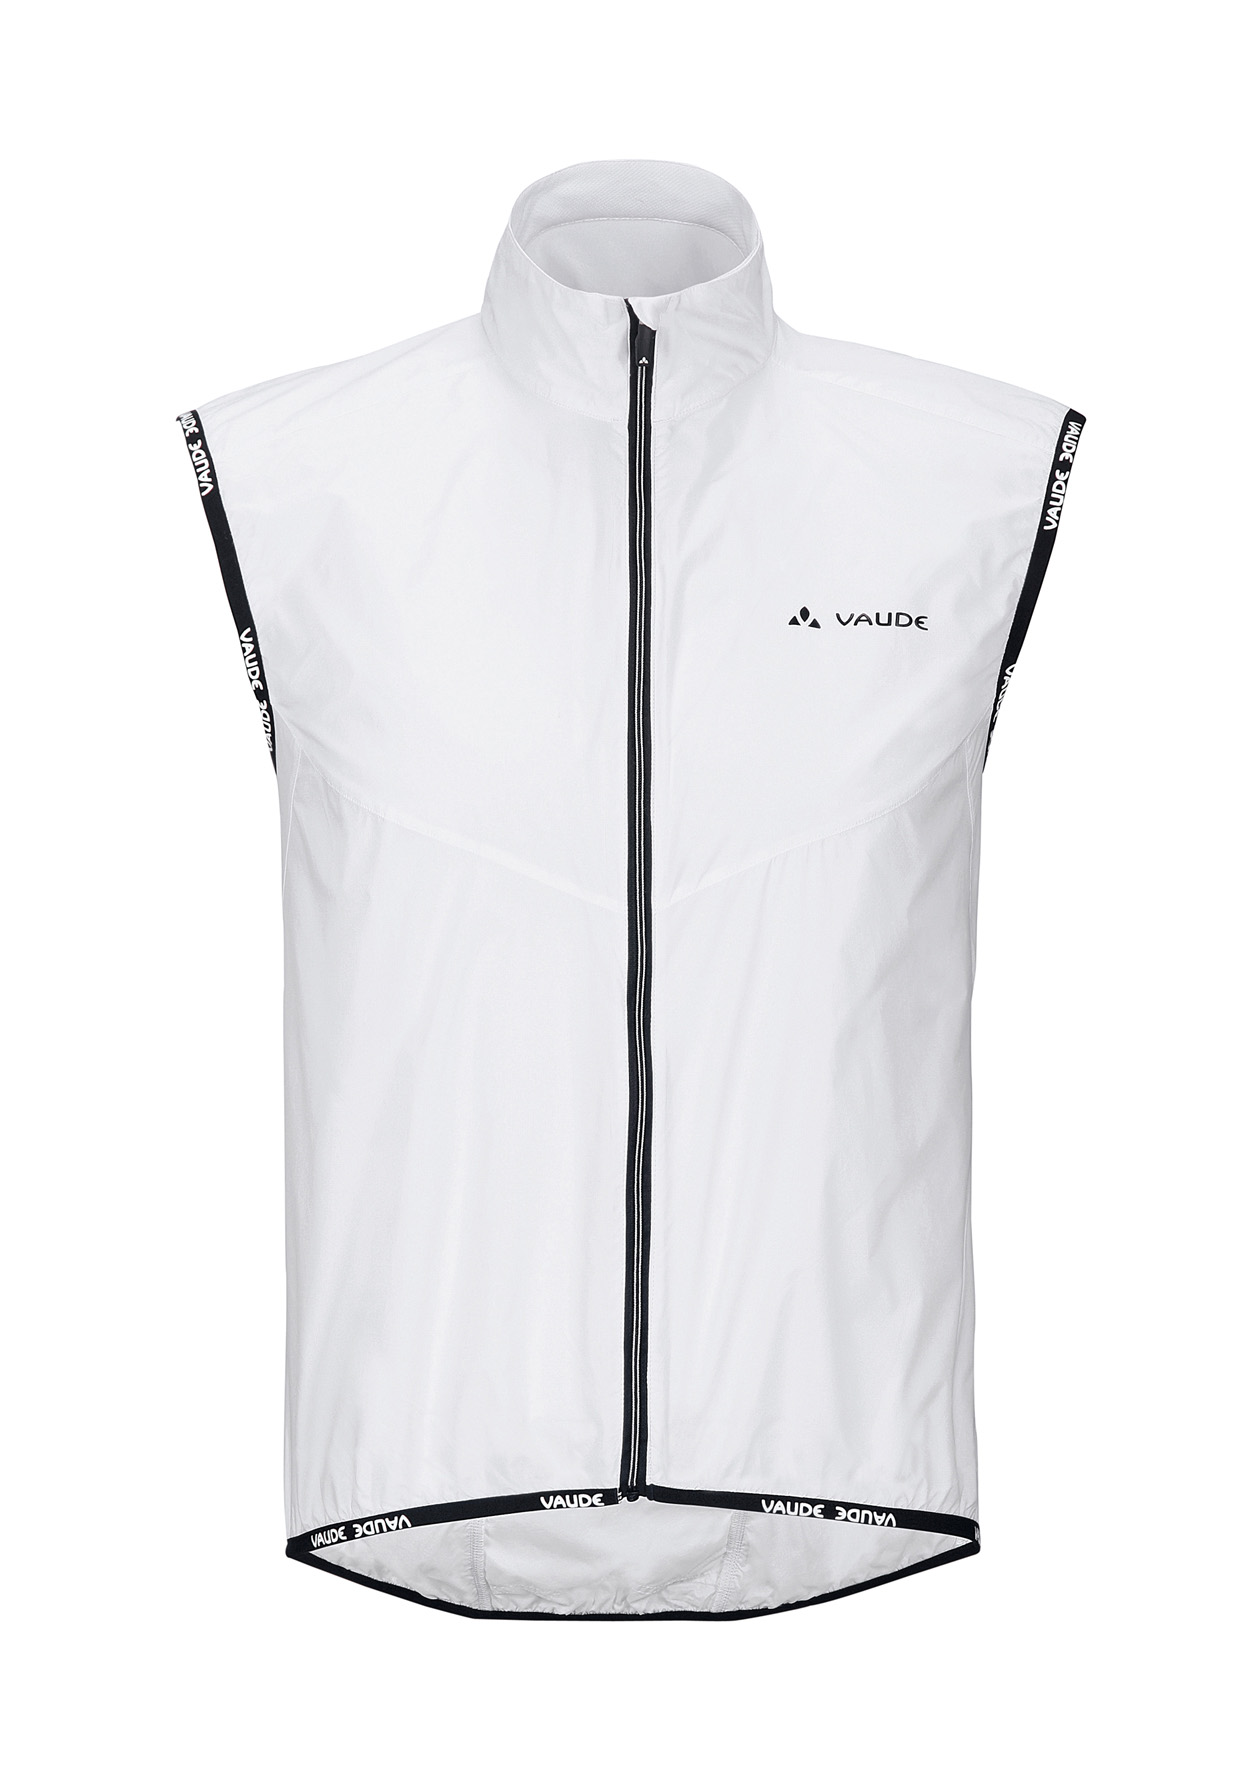 VAUDE Men´s Air Vest II white Größe XL - VAUDE Men´s Air Vest II white Größe XL